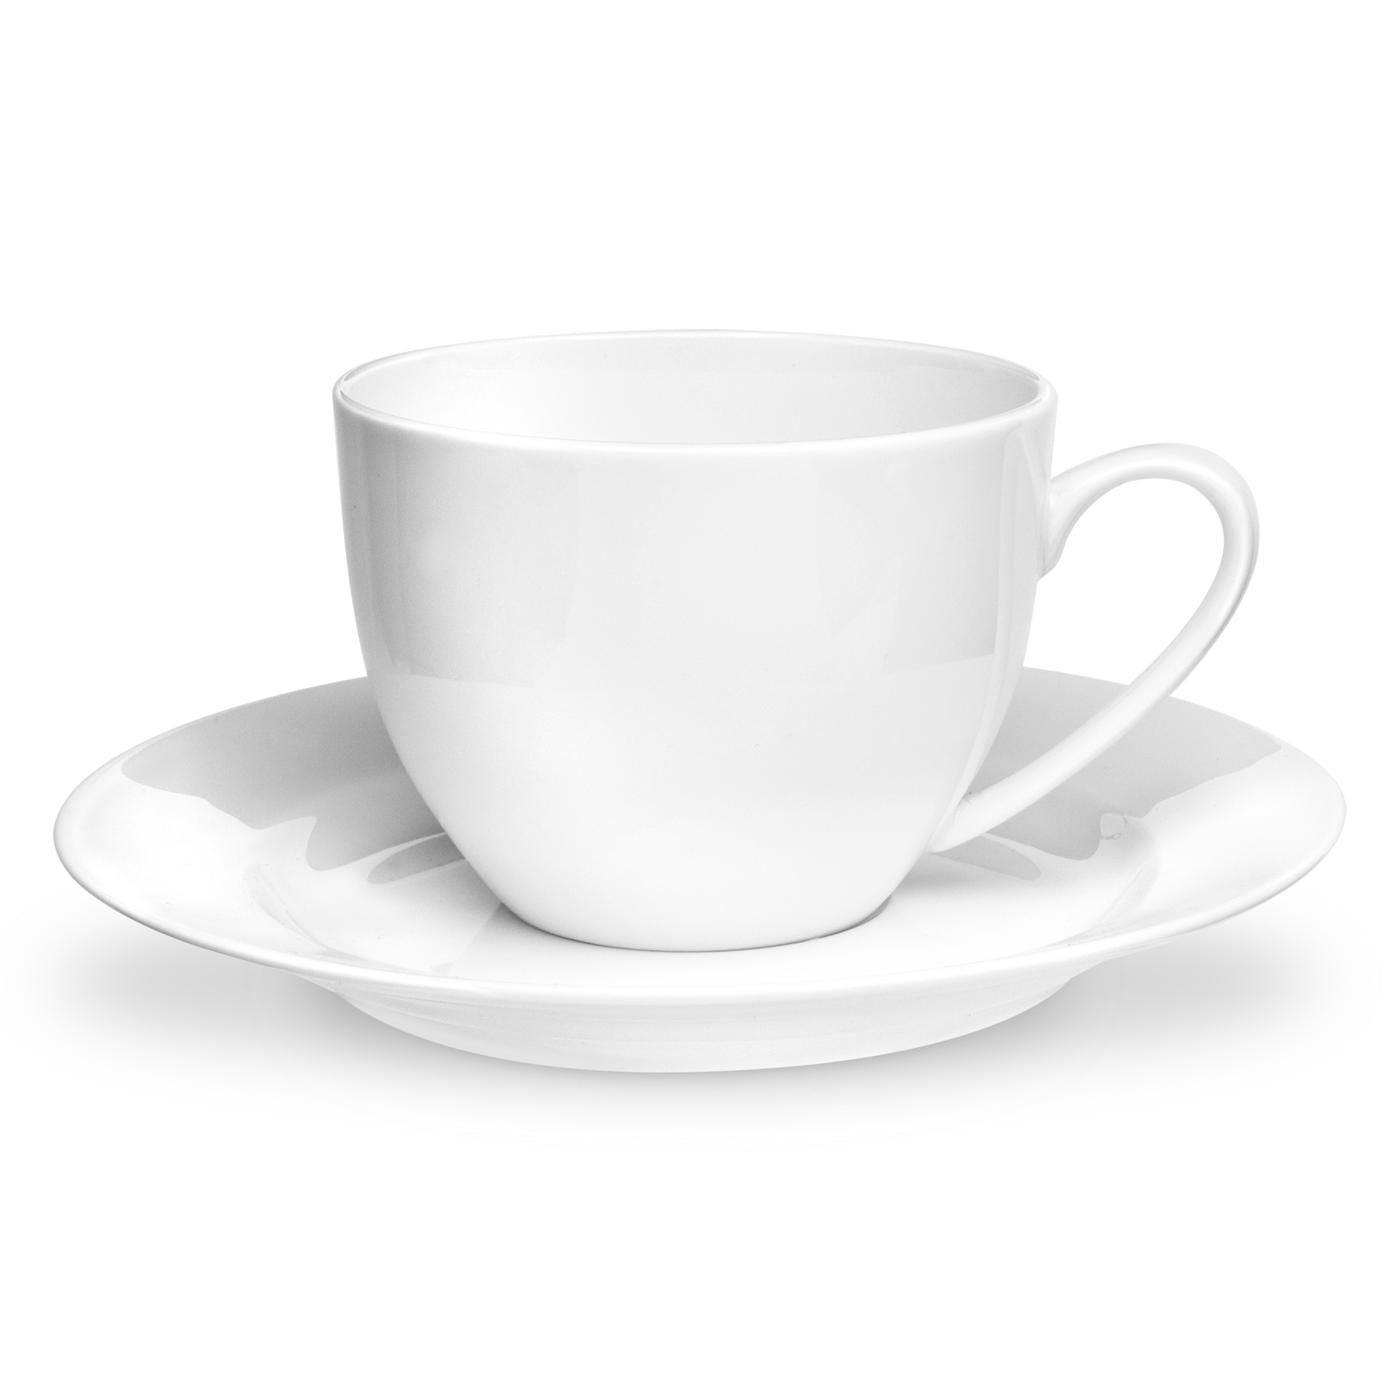 Royal Worcester Serendipity White Teacup & Saucer